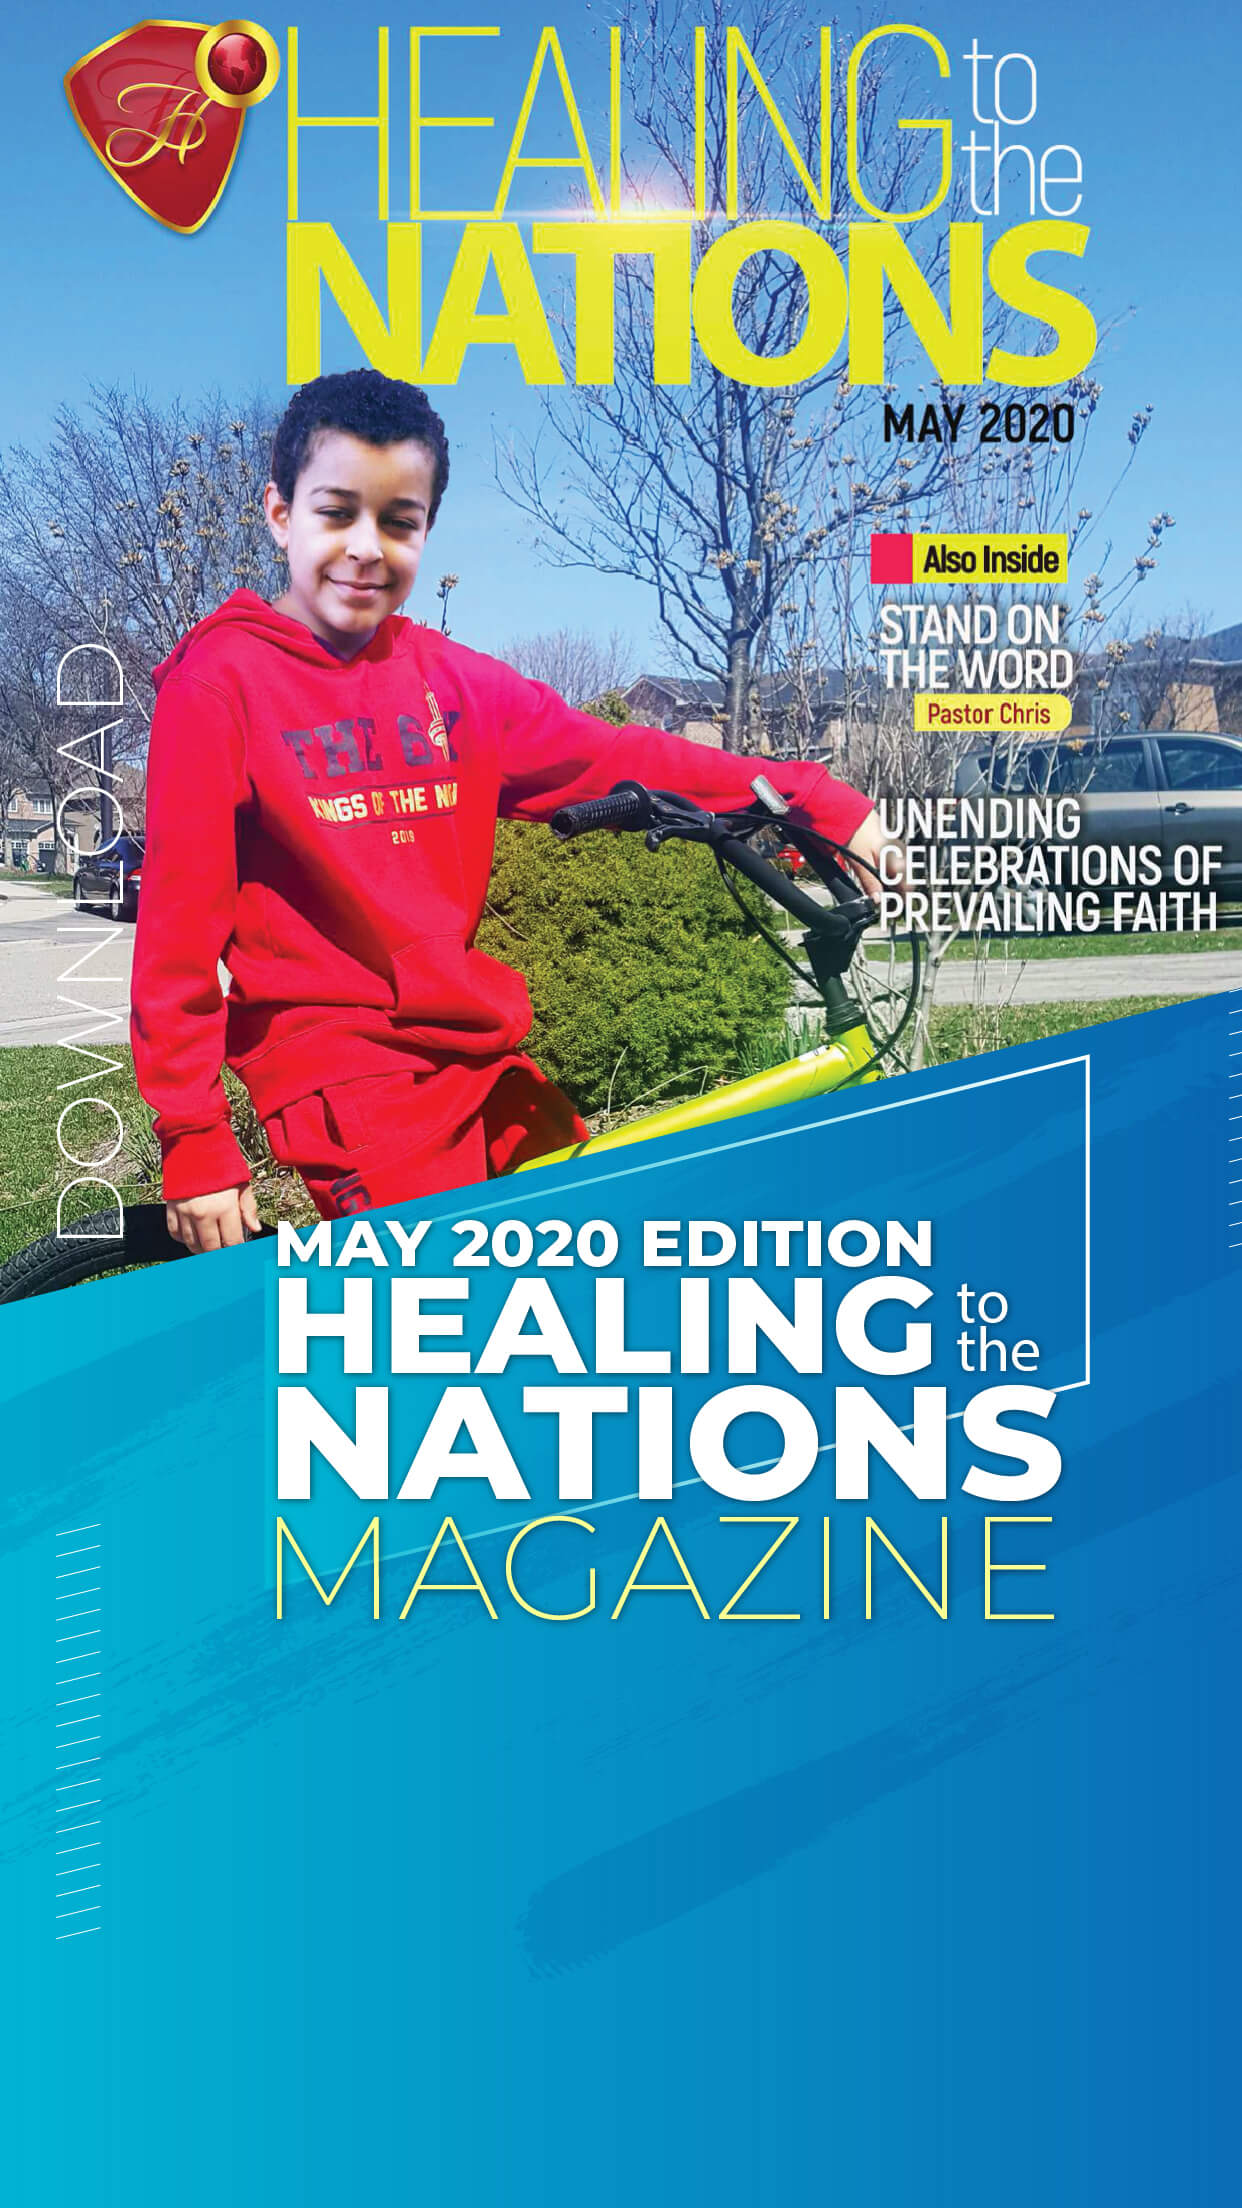 Healing to the Nations Magazine - May 2020 Edition.